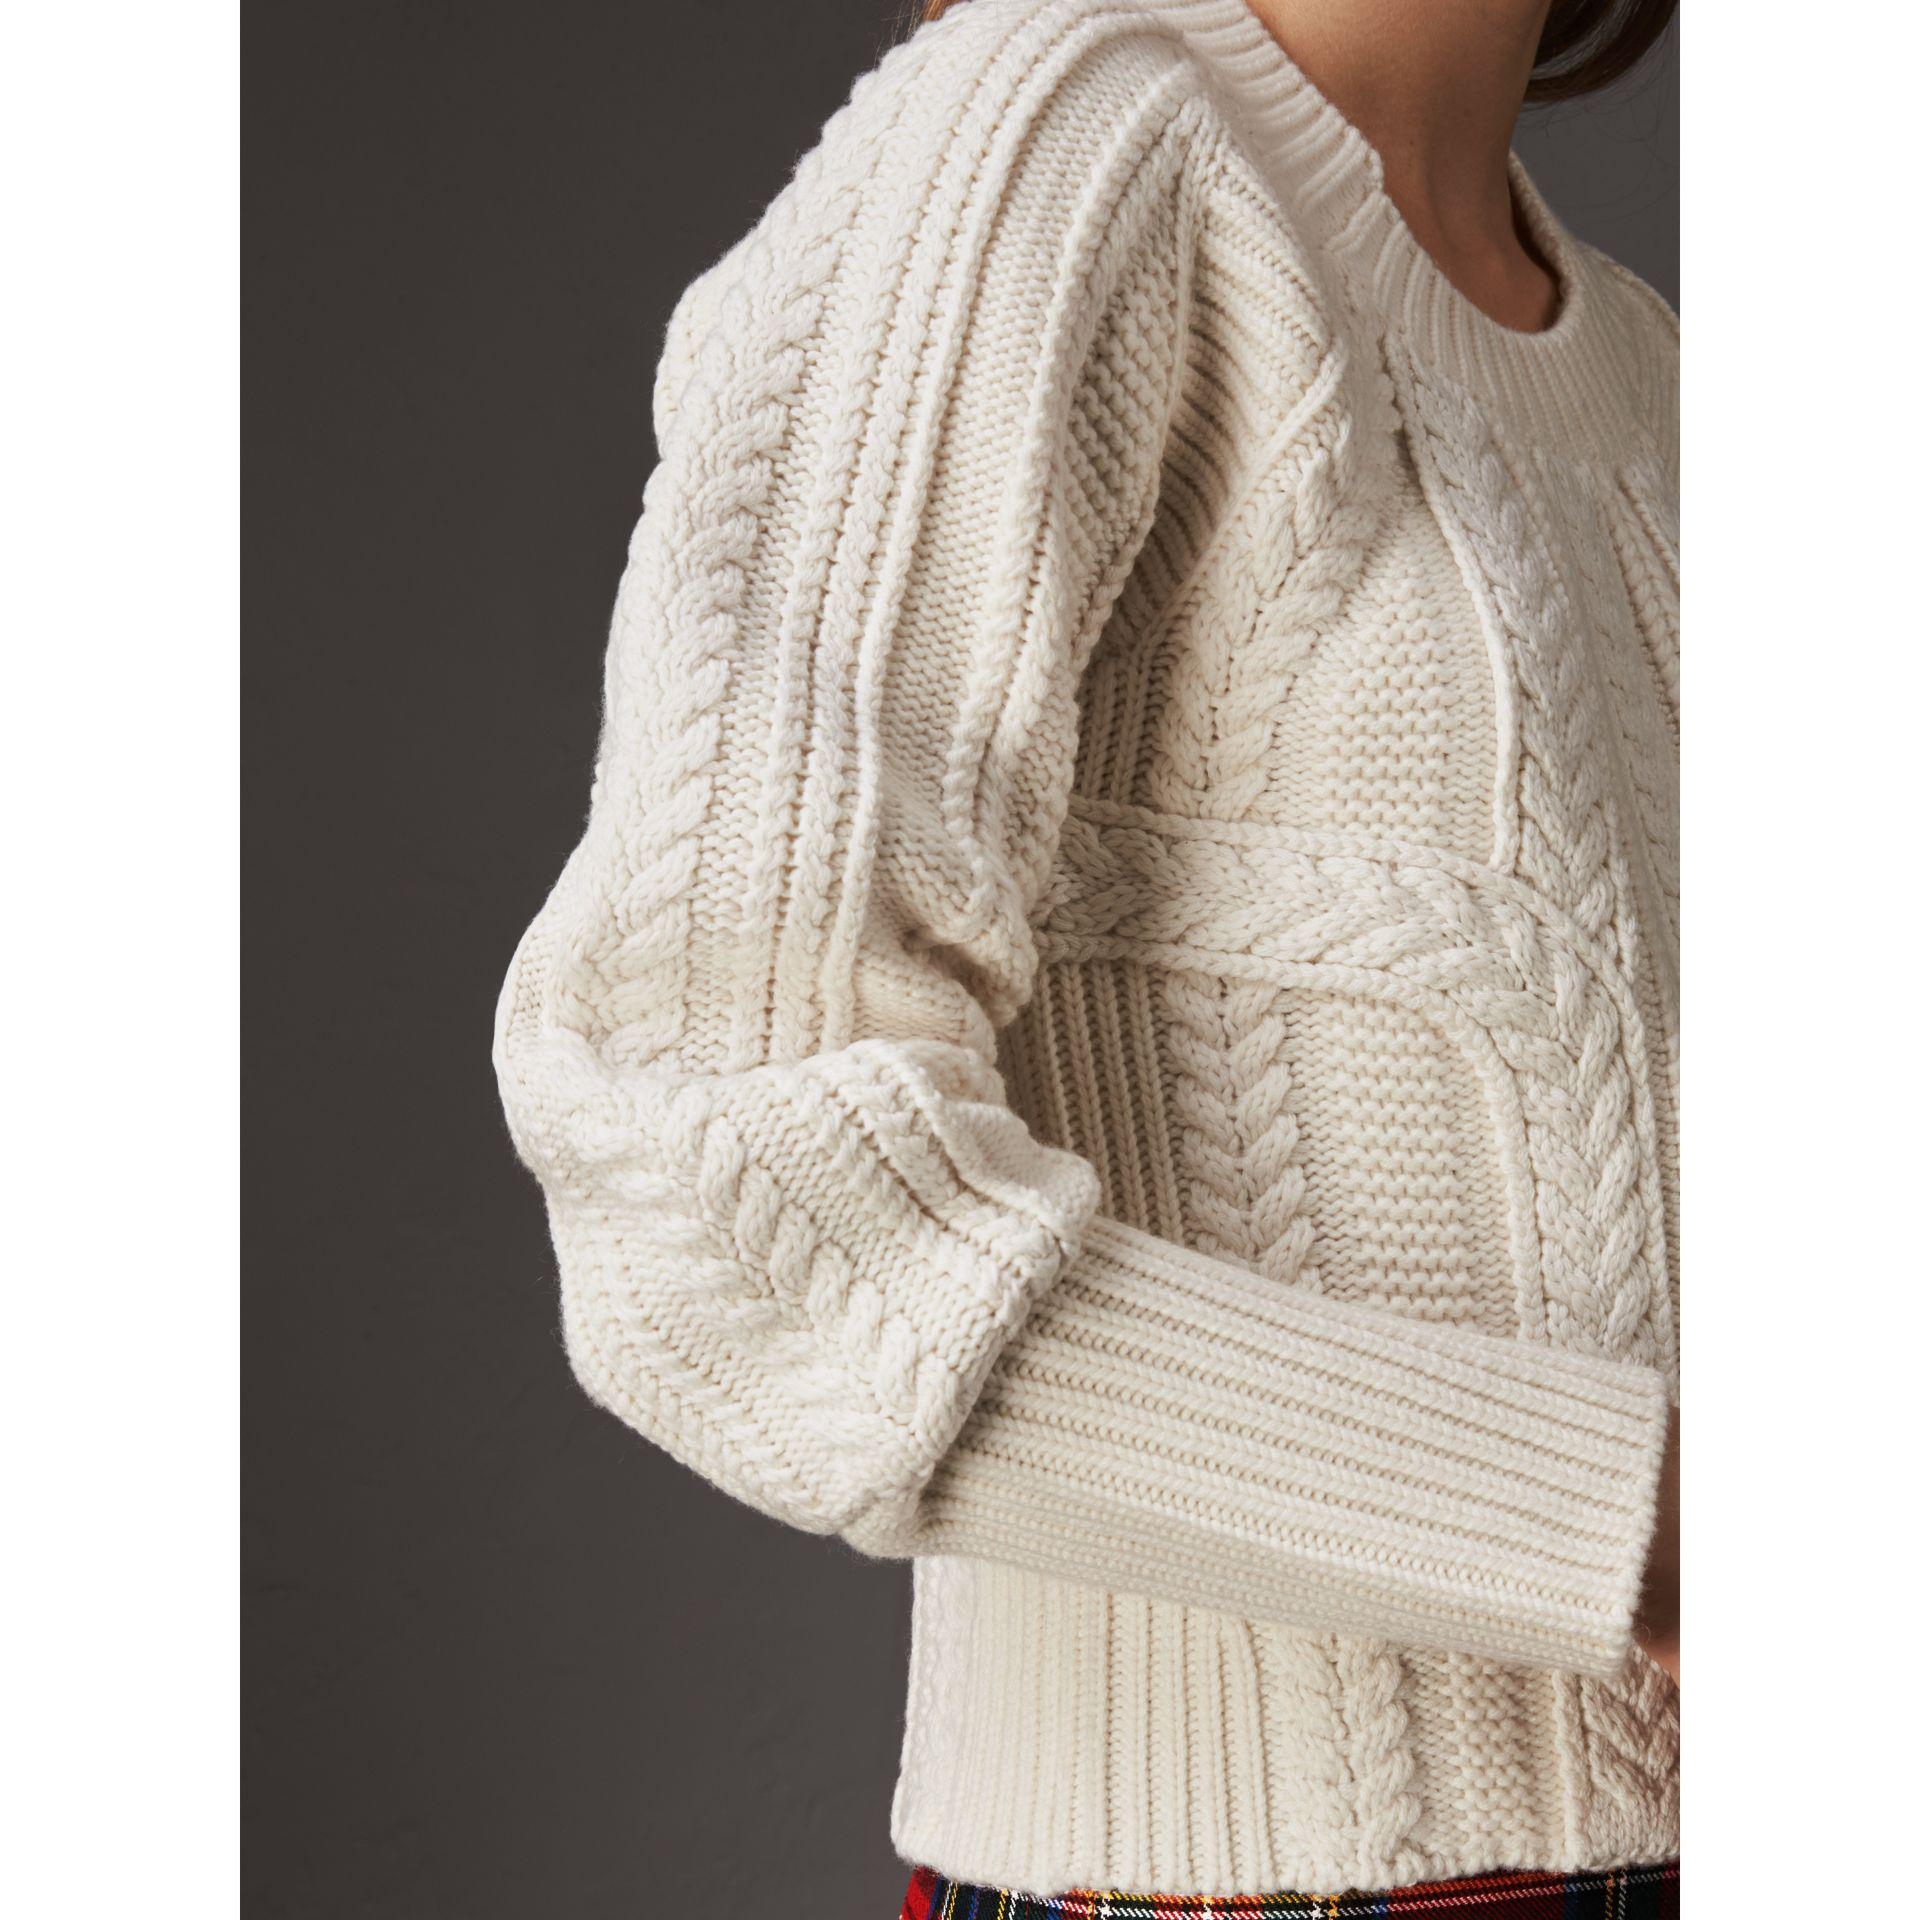 8b3181b9c10fa5 Burberry Two-tone Cable Knit Wool Cashmere Sweater - Lyst